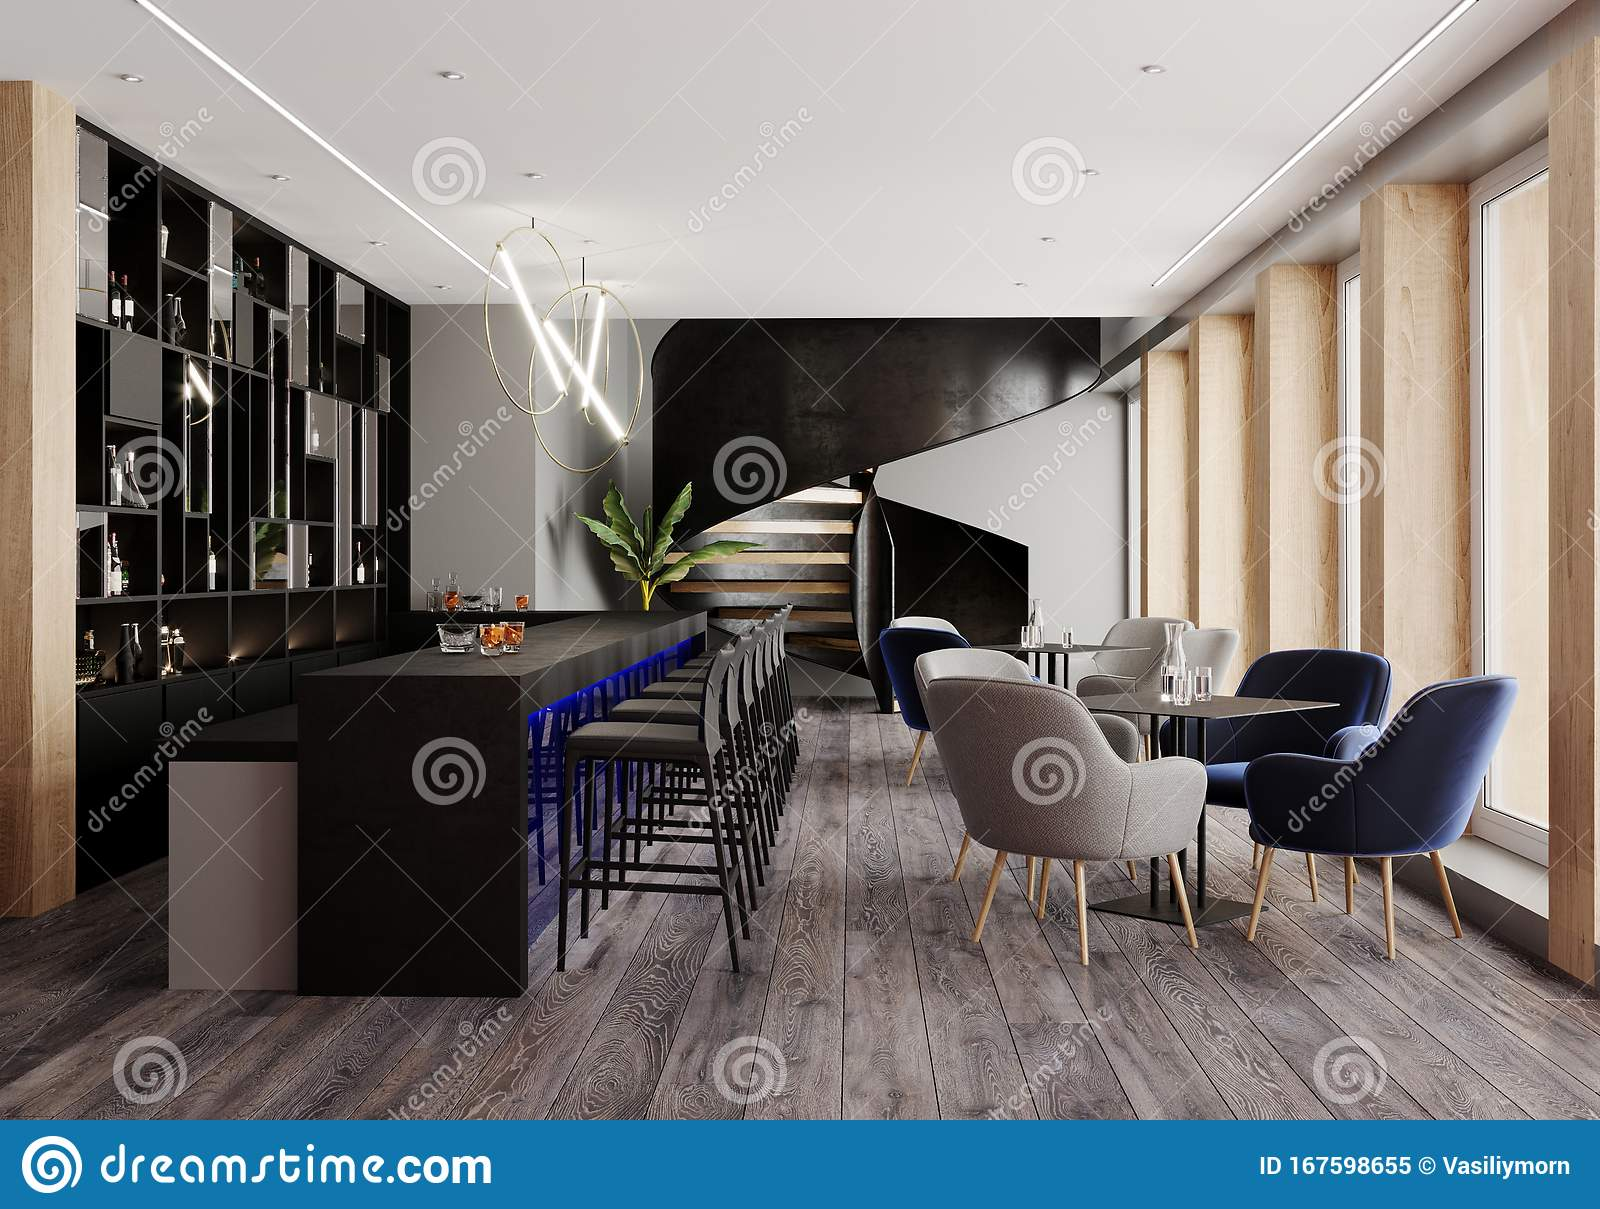 Modern Interior Of Bar Restaurant Concept Of Restaurant Interior With Black Bar And Blue Light And Armchairs And Black Stairs Stock Illustration Illustration Of Decoration Design 167598655